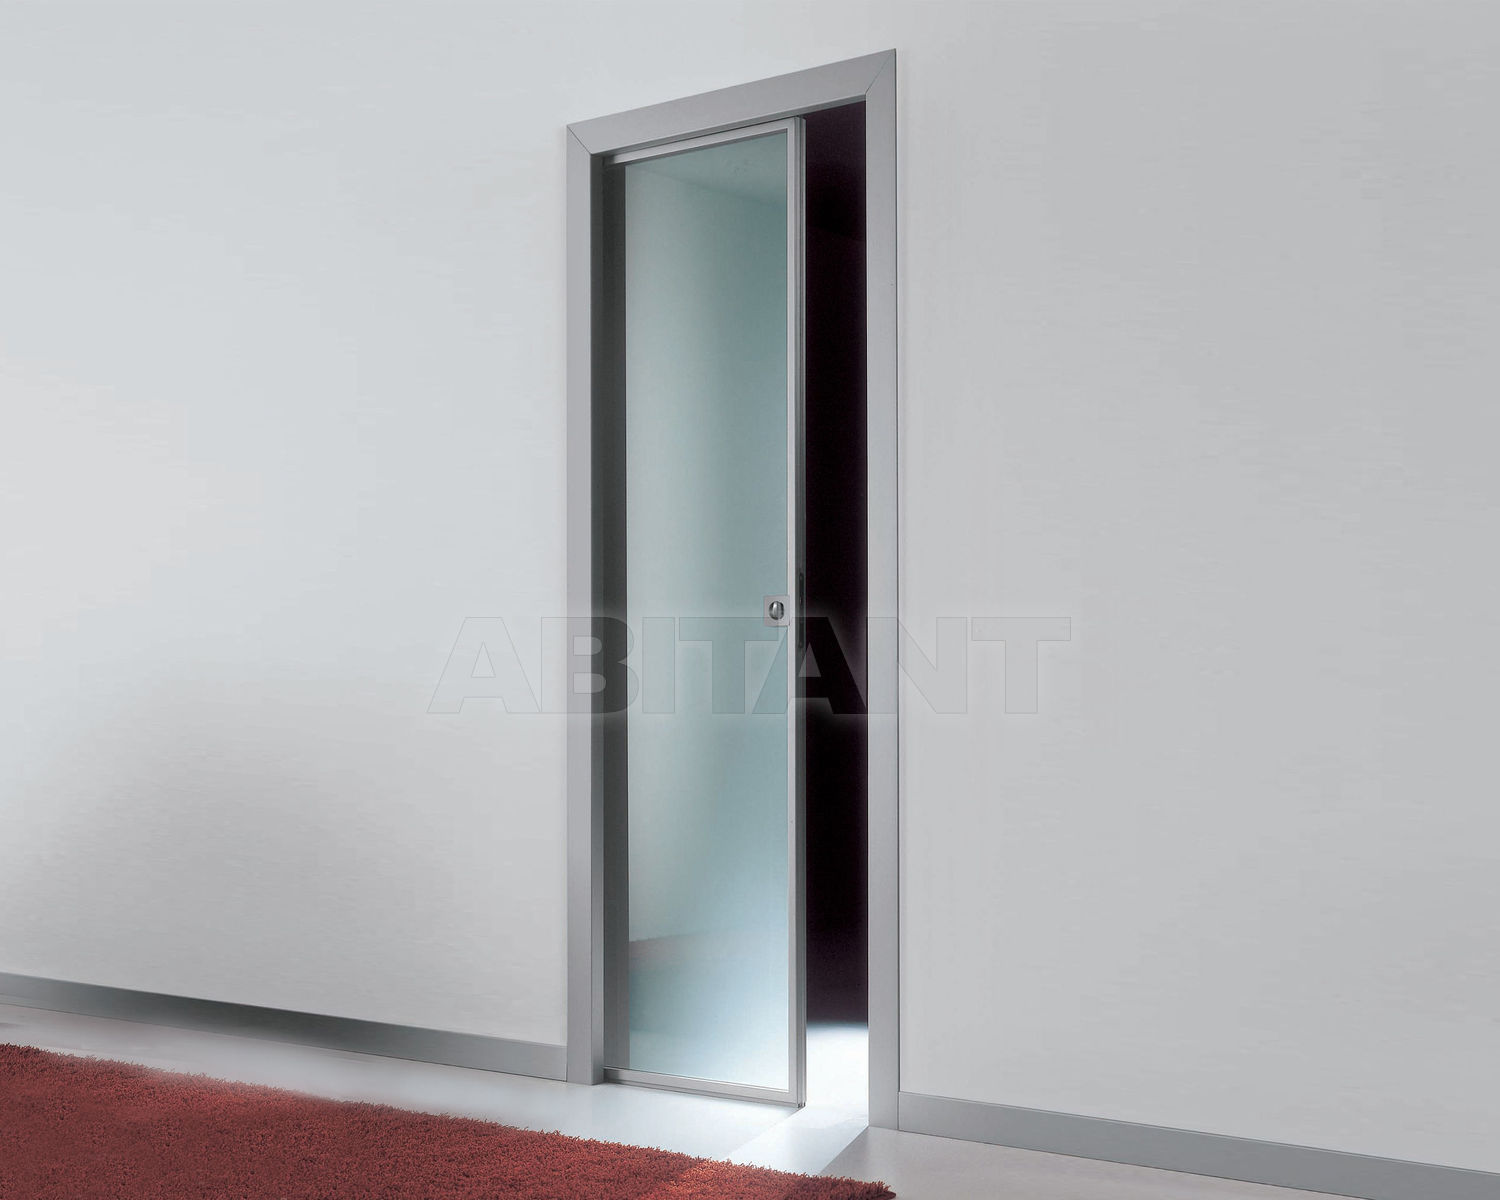 Купить Дверь  стеклянная Res Italia Doorscollection LUNA Sliding door into the wall